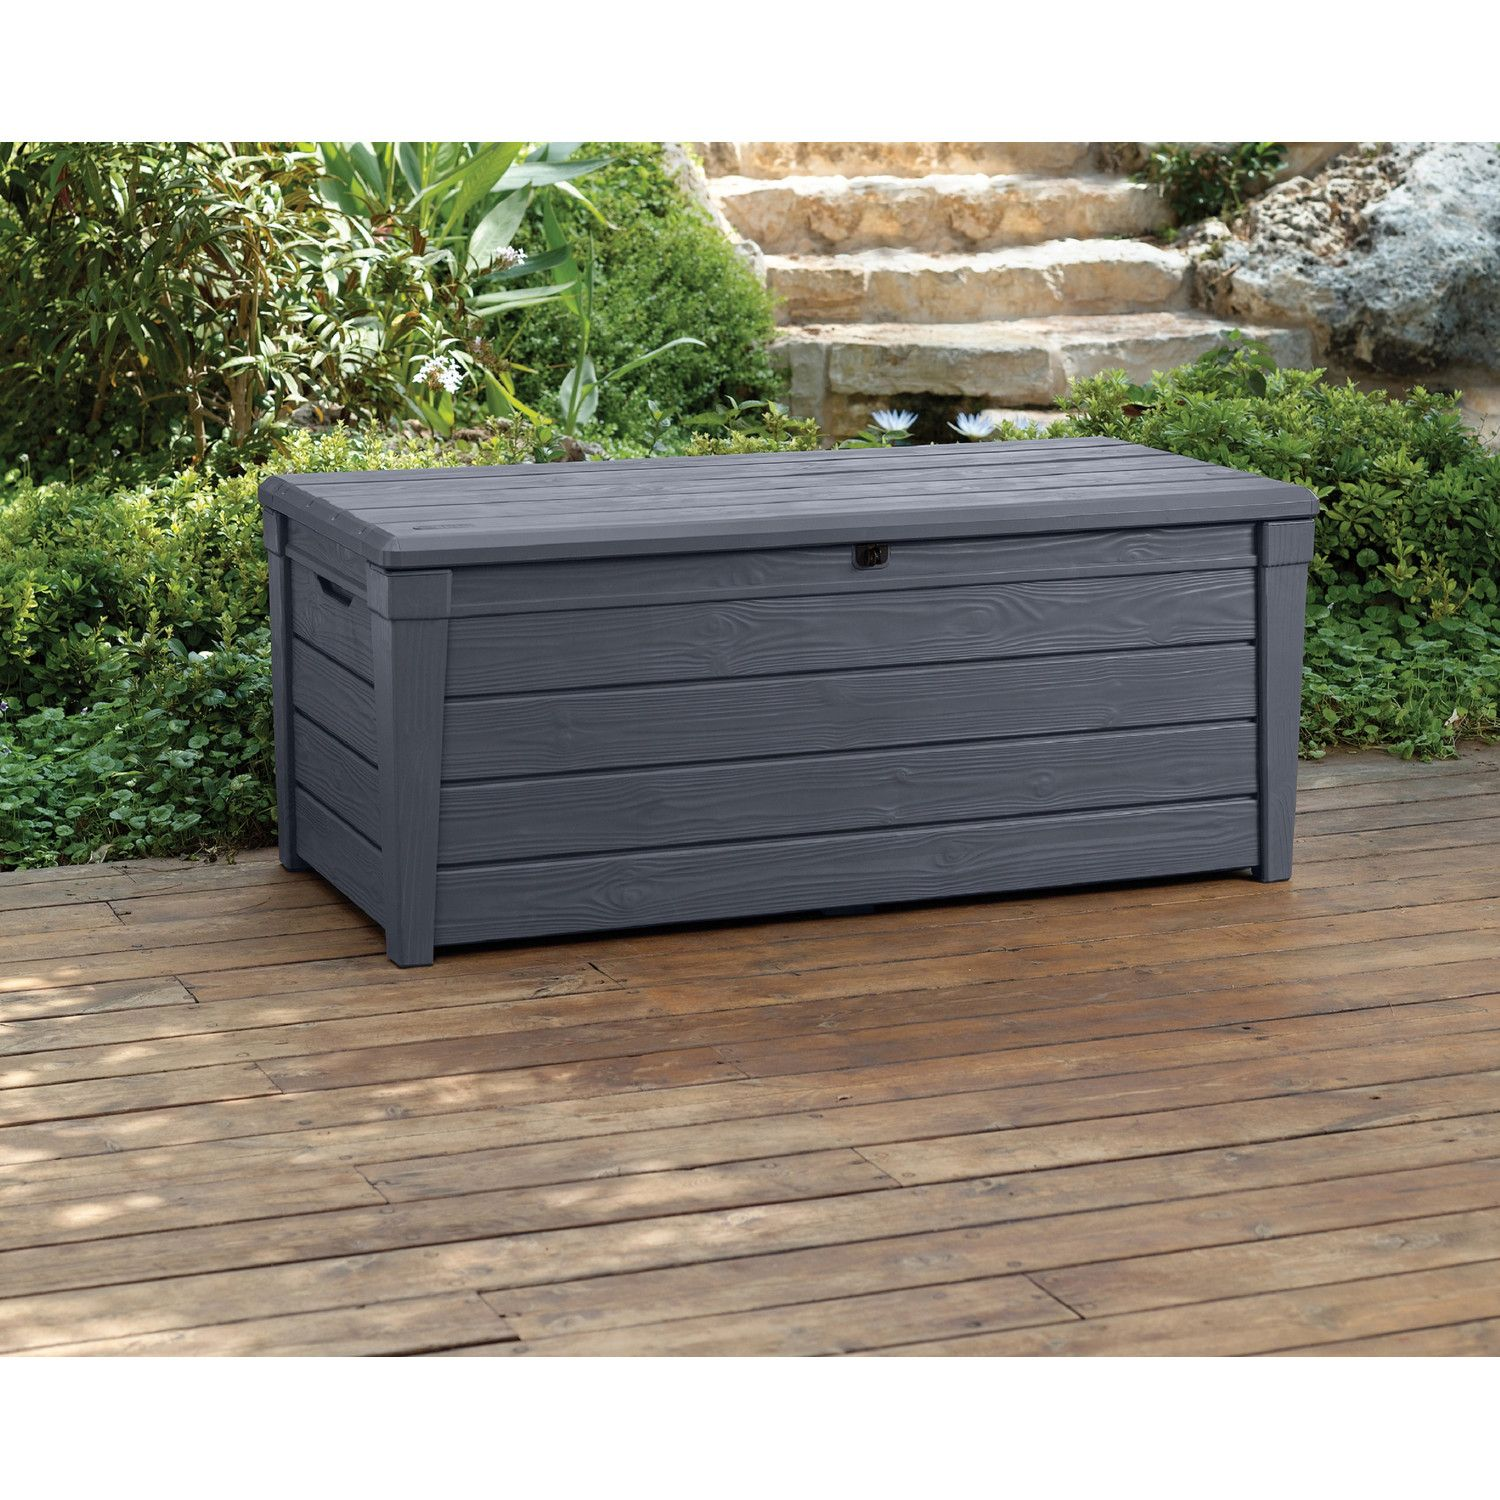 Keter Brightwood 120 Gallon Resin Deck Box Resin Deck Box Patio Storage Outdoor Storage Bench